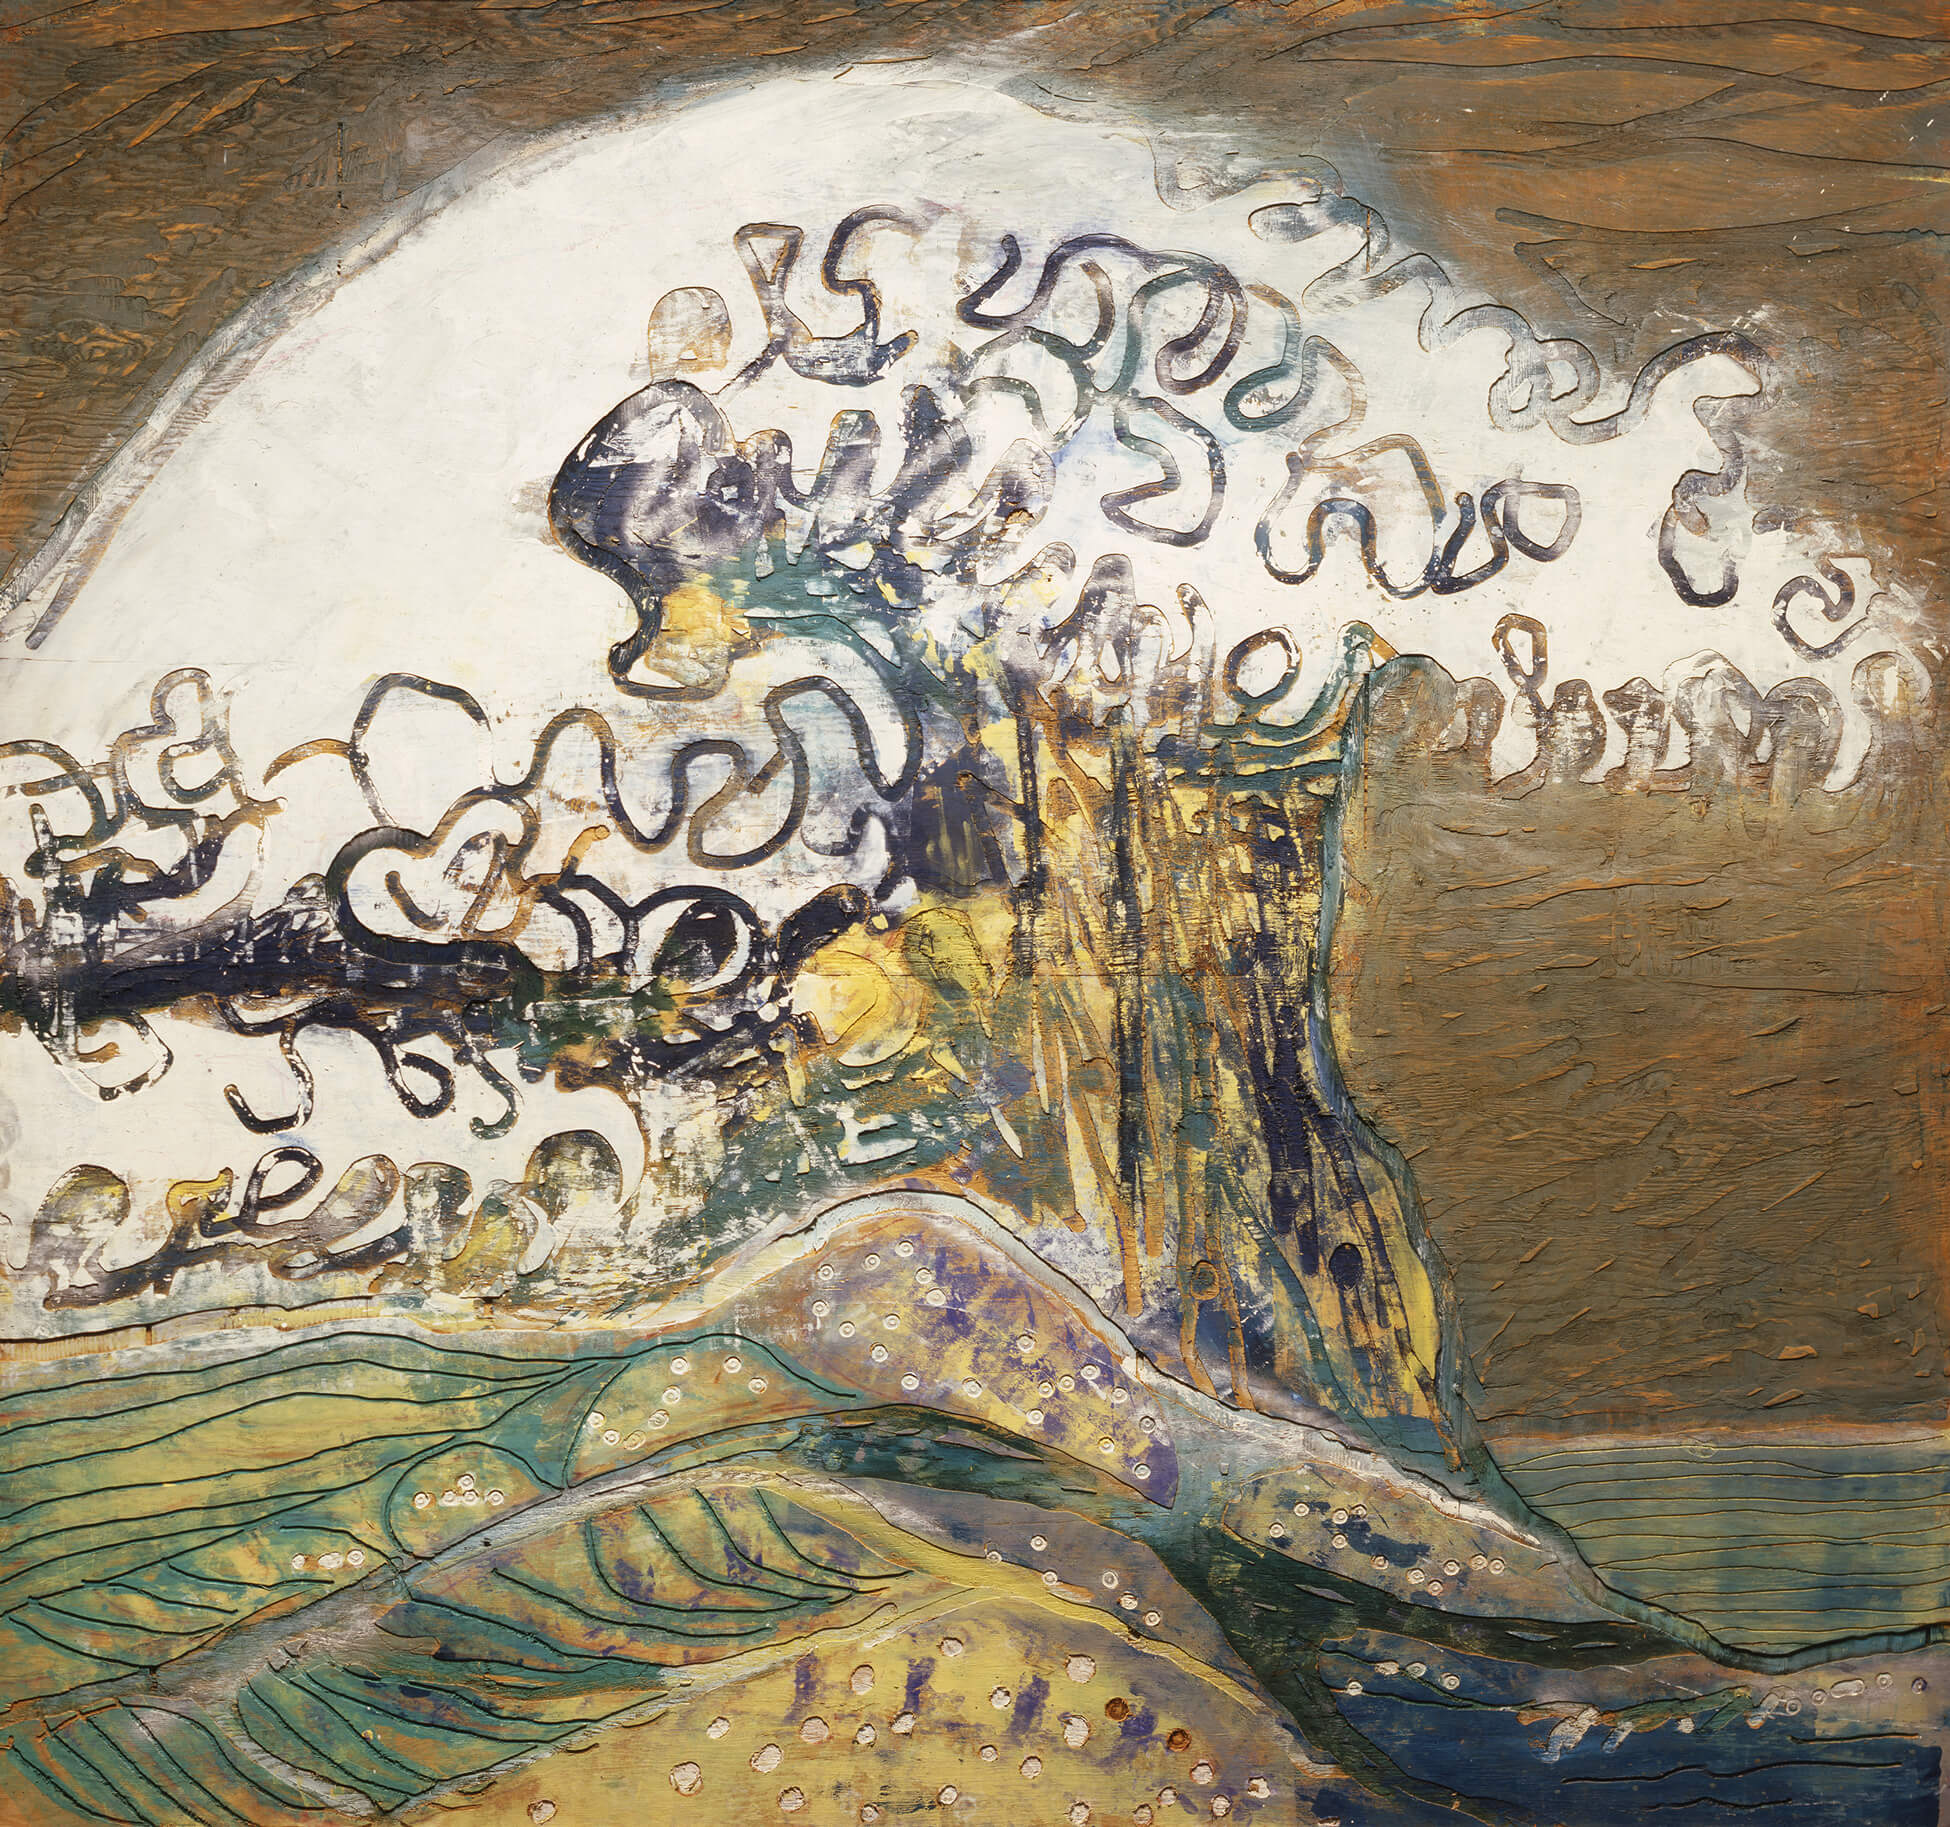 Paterson Ewen, The Great Wave—Homage to Hokusai, 1974